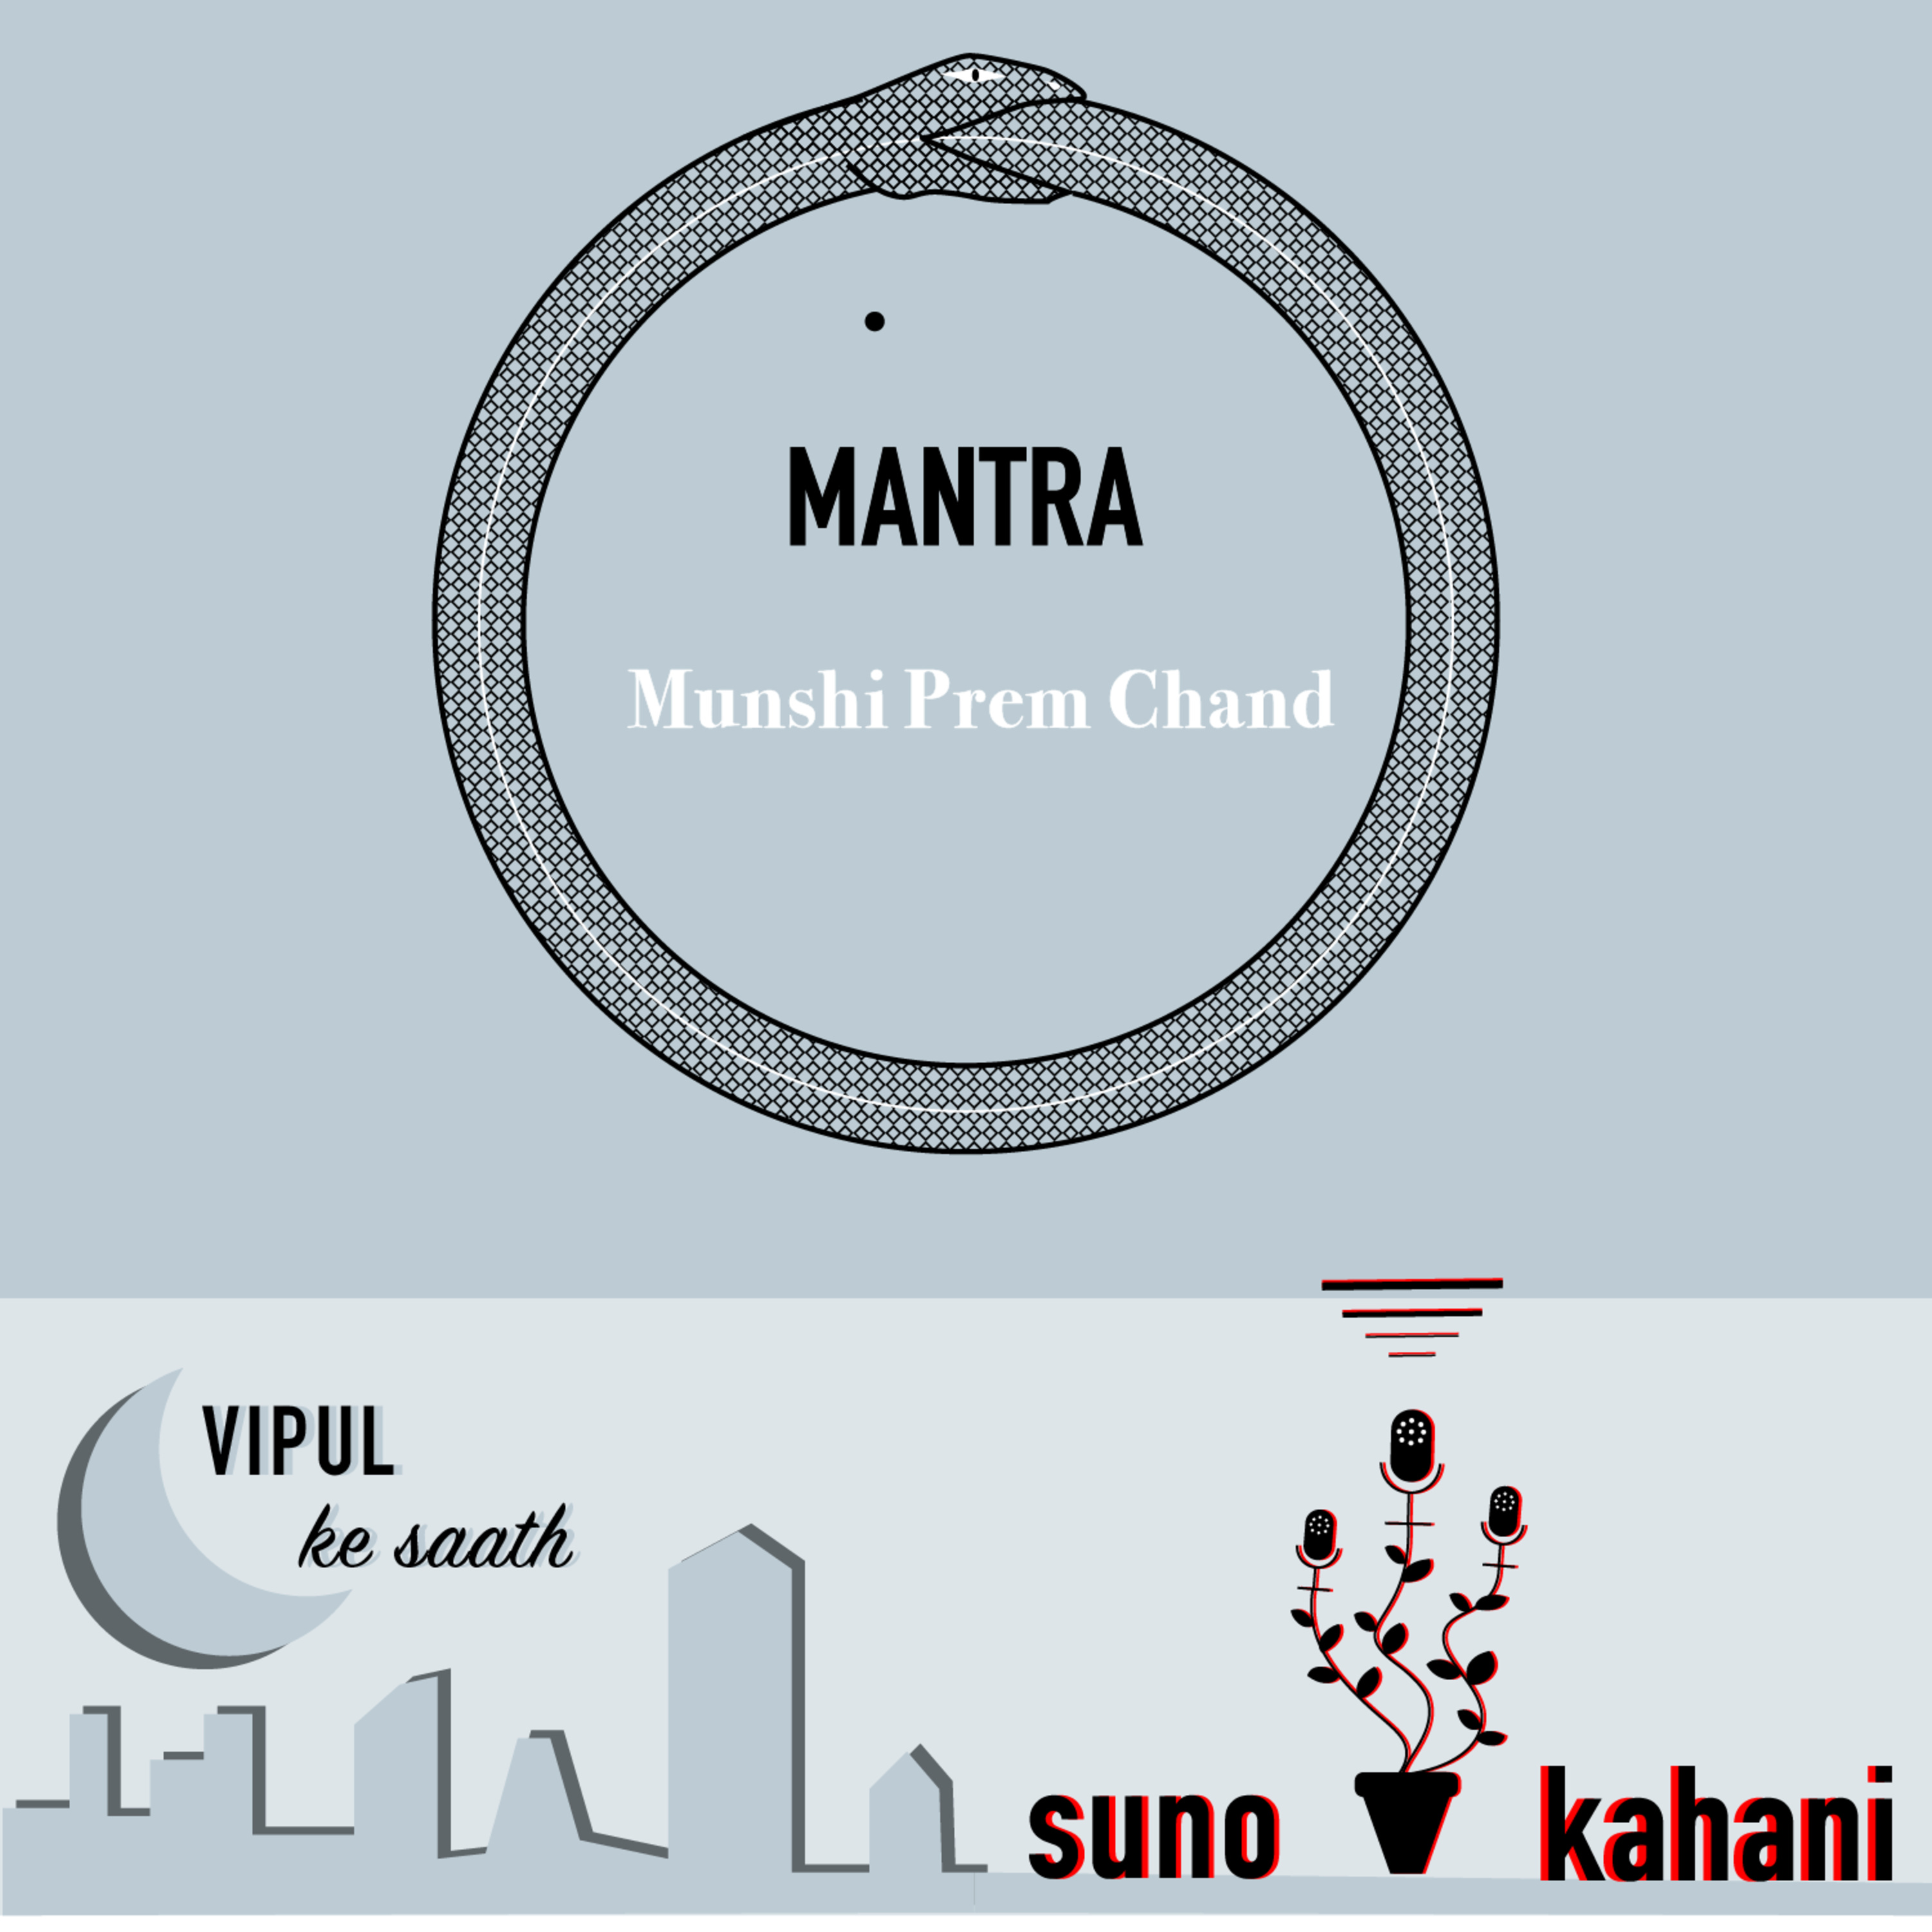 Ep 6 - Part 1 of 'Mantra' by Munshi Premchand